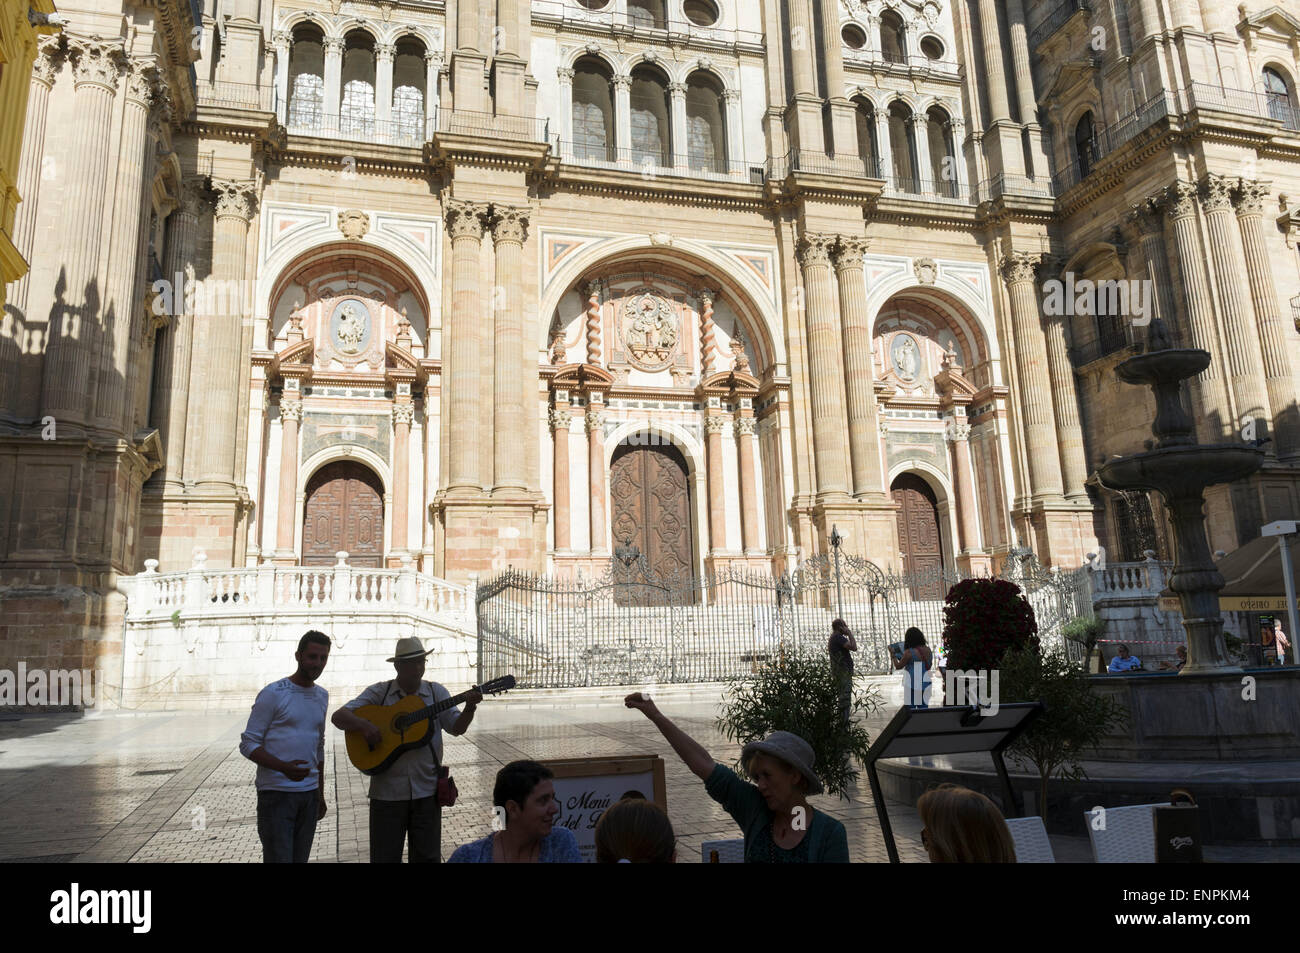 Malaga, Spain. Buskers and people sitting at a terrace by the Cathedral on Bishop Square. - Stock Image